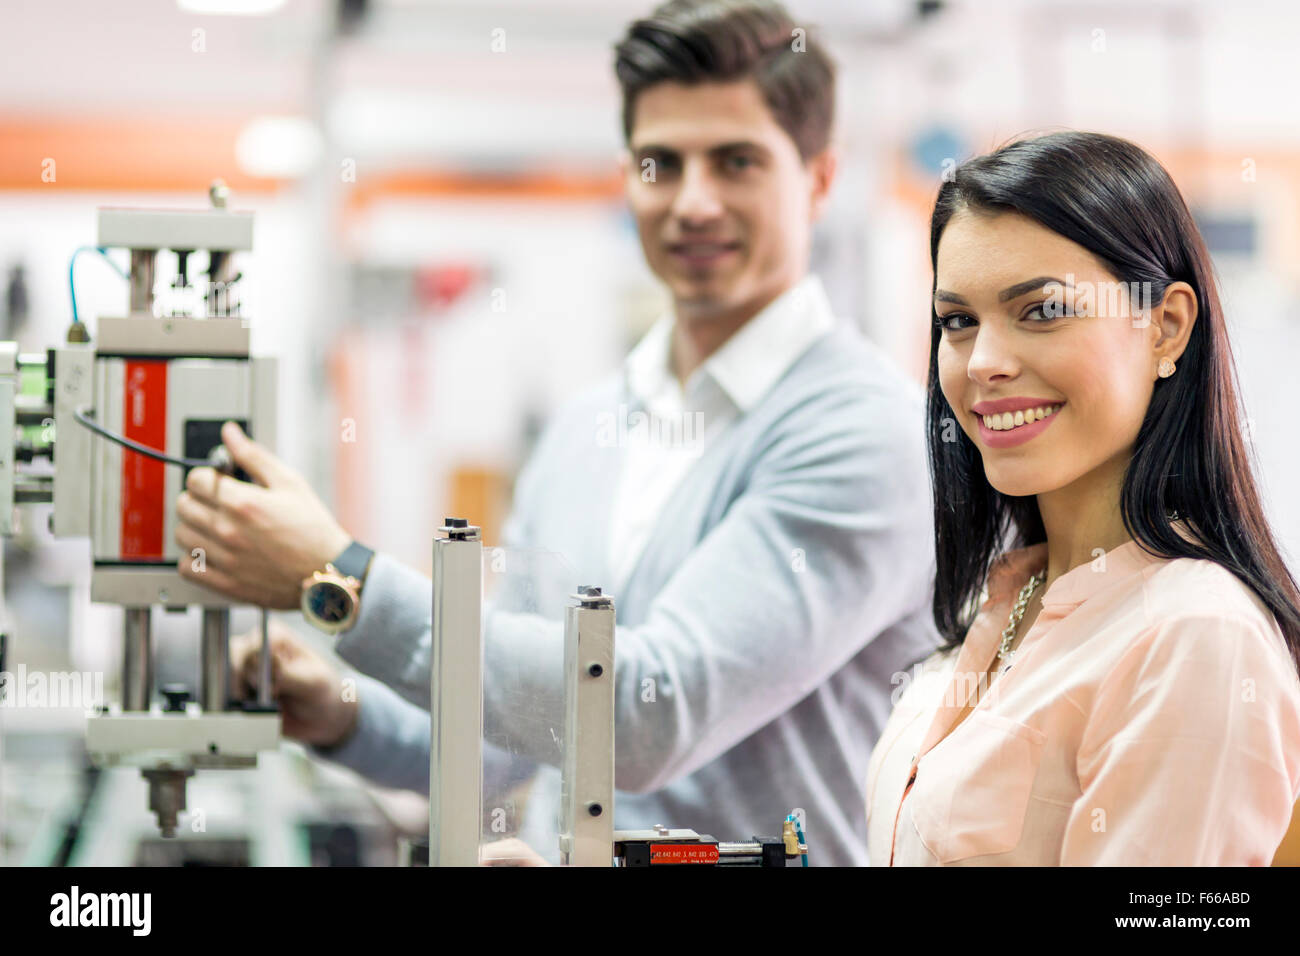 Two young students working on a science project together in lab - Stock Image